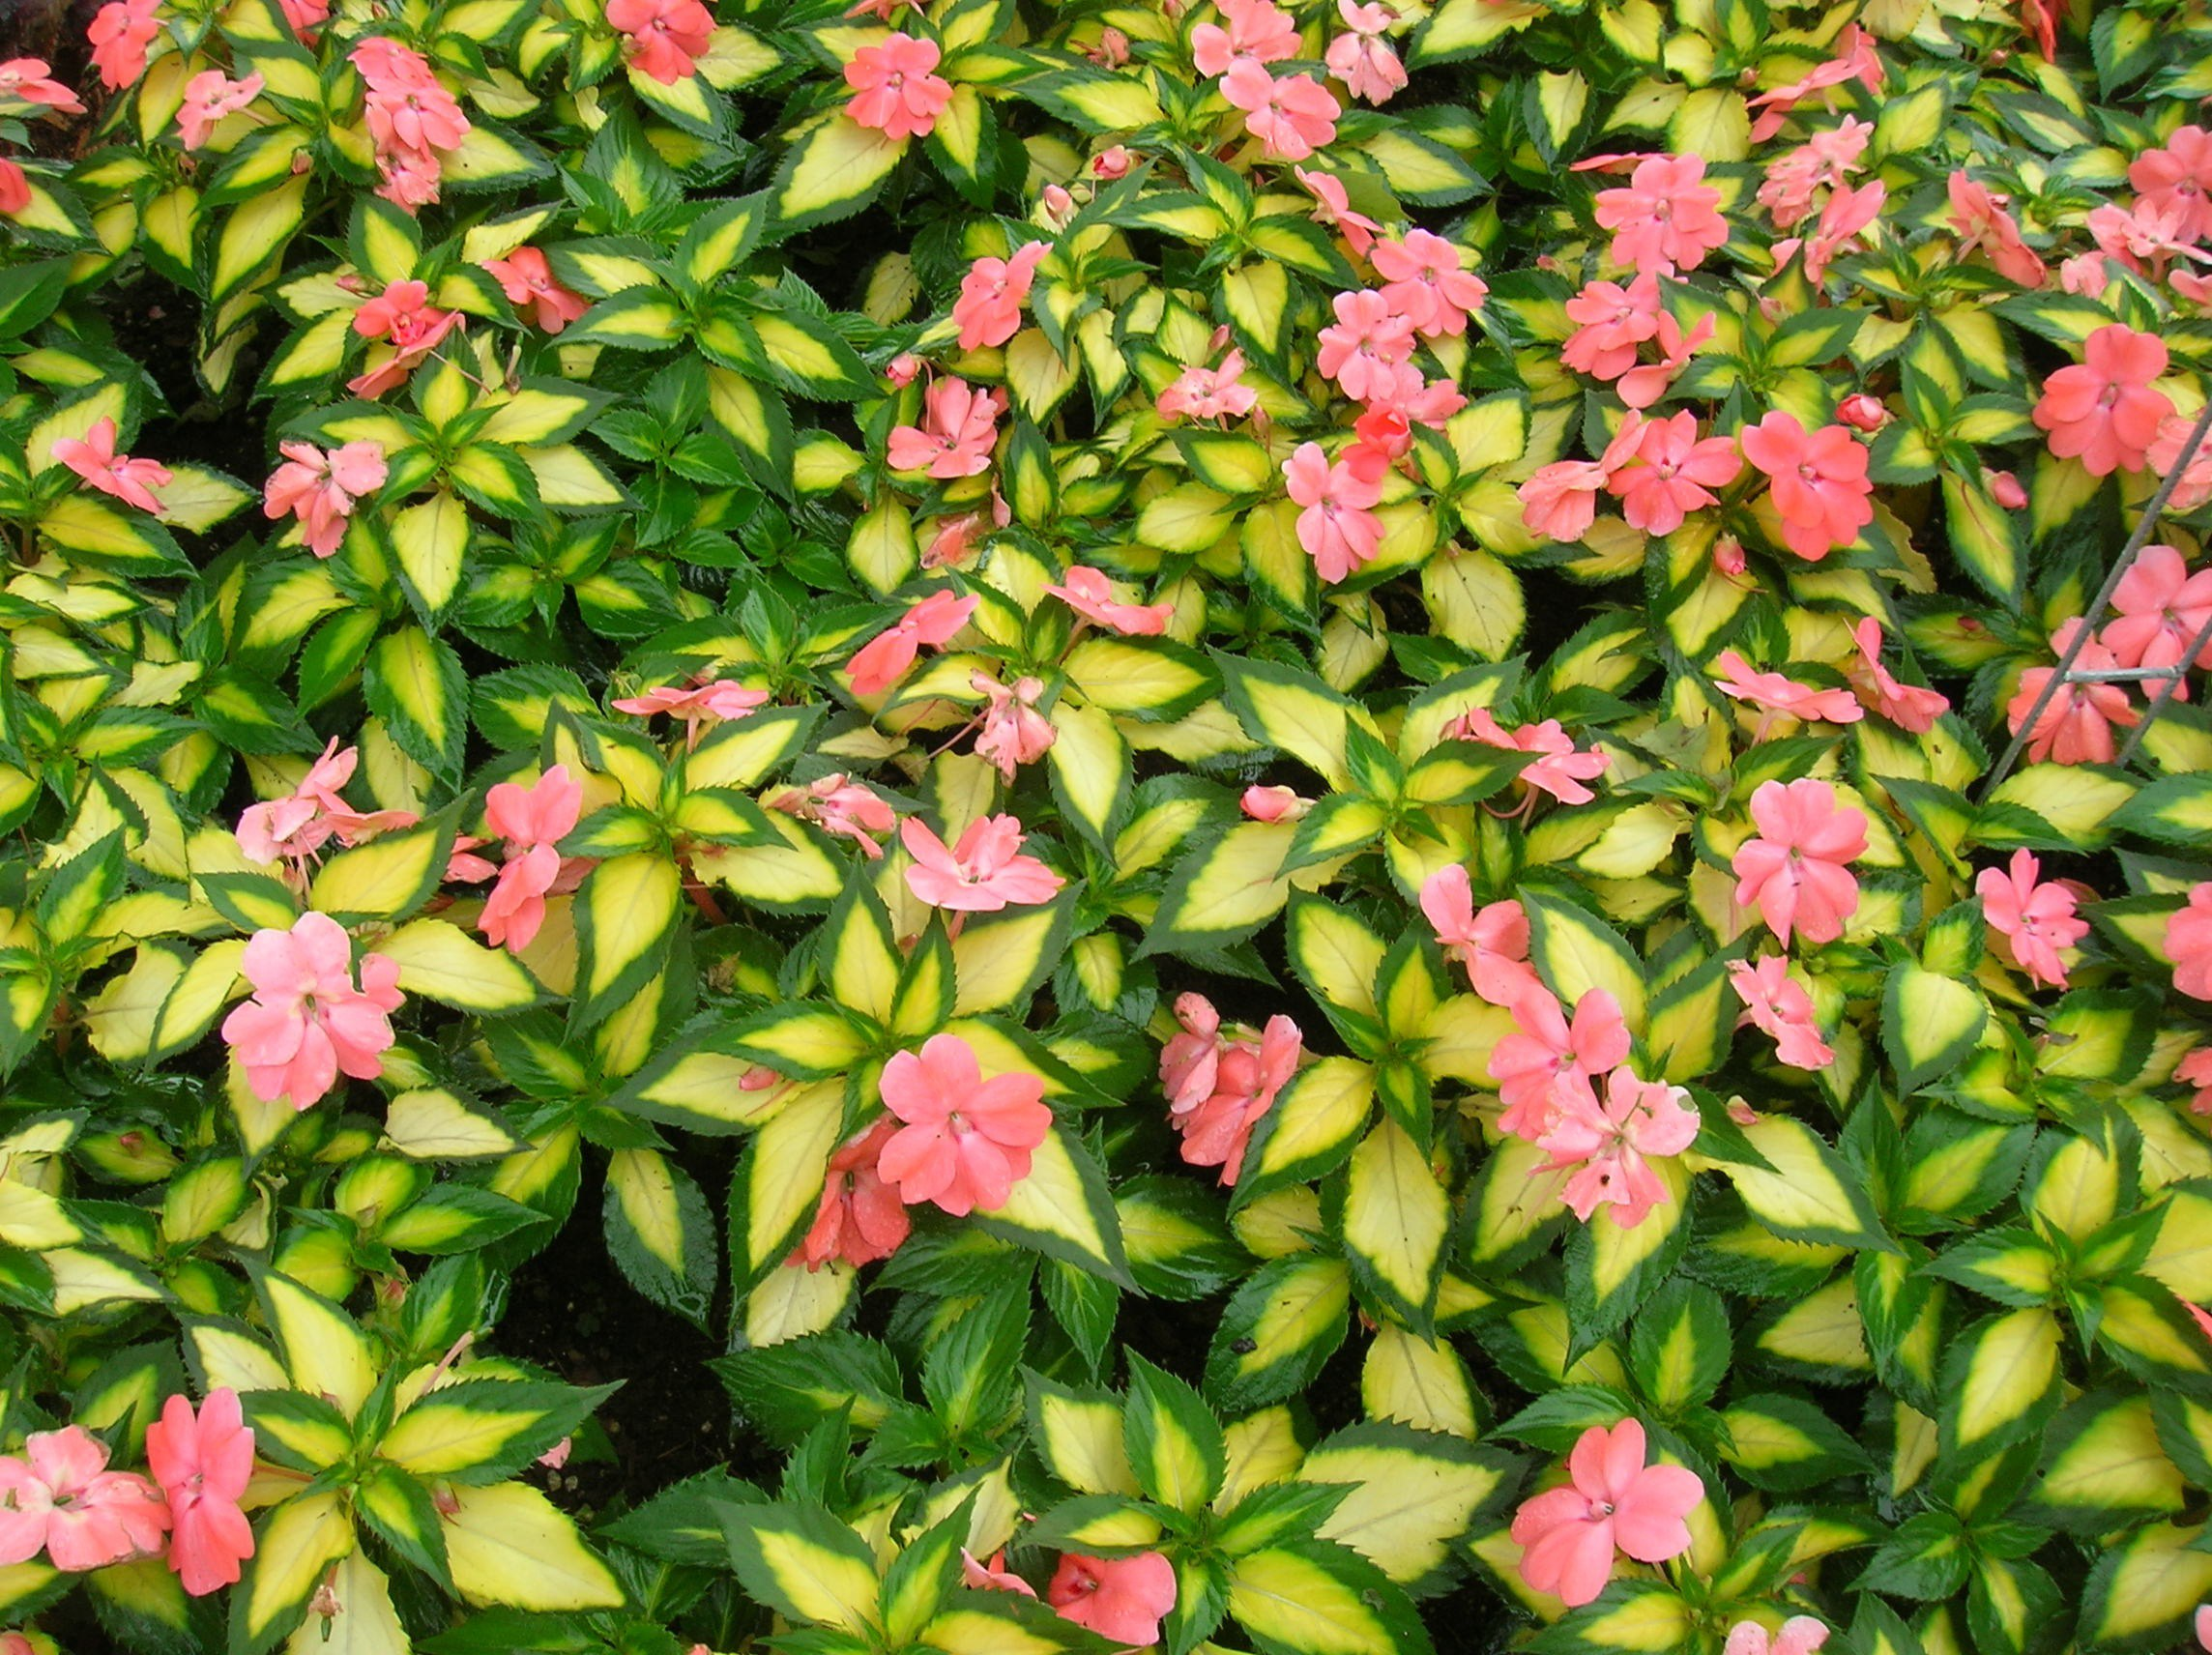 How To Grow Impatiens Growing And Caring For Impatiens